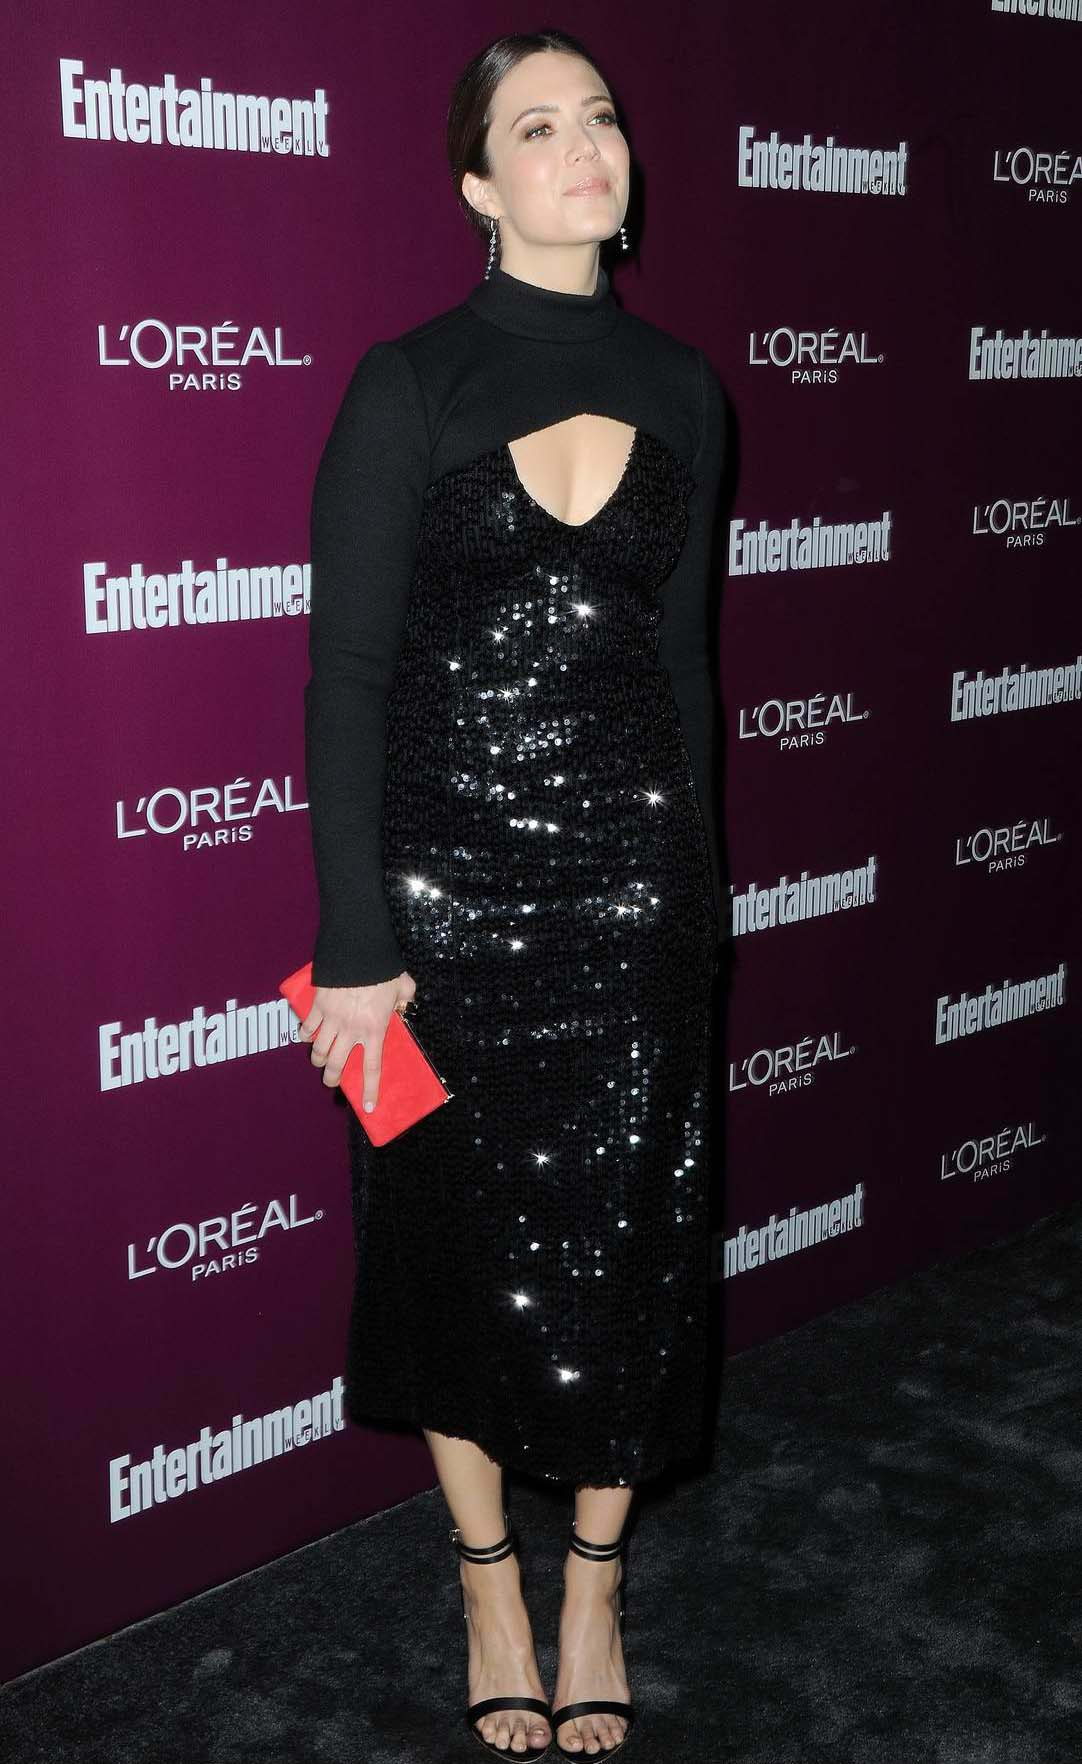 Mandy Moore at the 2017 Entertainment Weekly Pre-Emmy party in Los Angeles